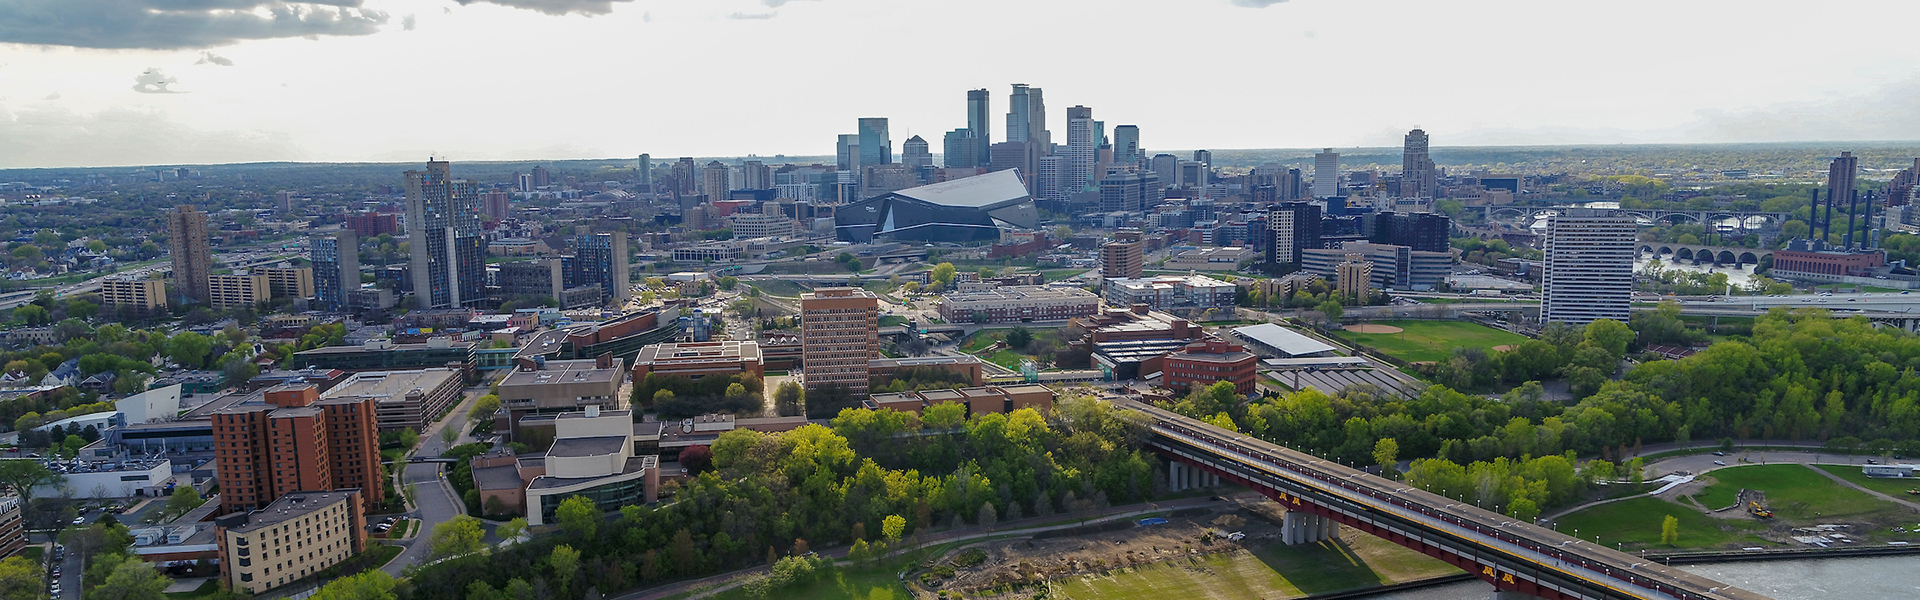 Downtown Minneapolis aerial photo